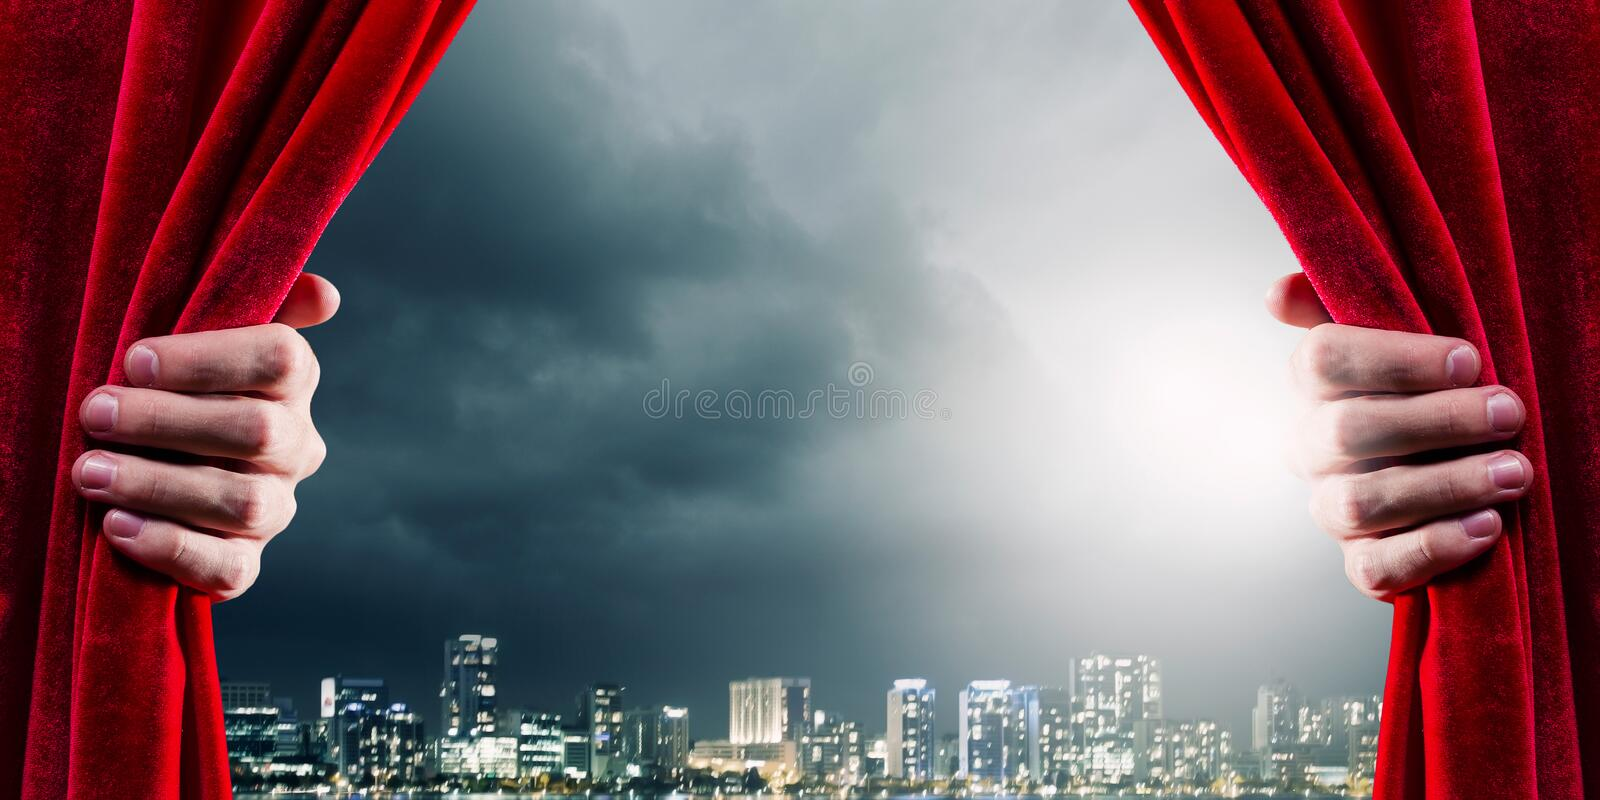 Opening curtain. Close up of hand opening red curtain. Place for text royalty free stock image